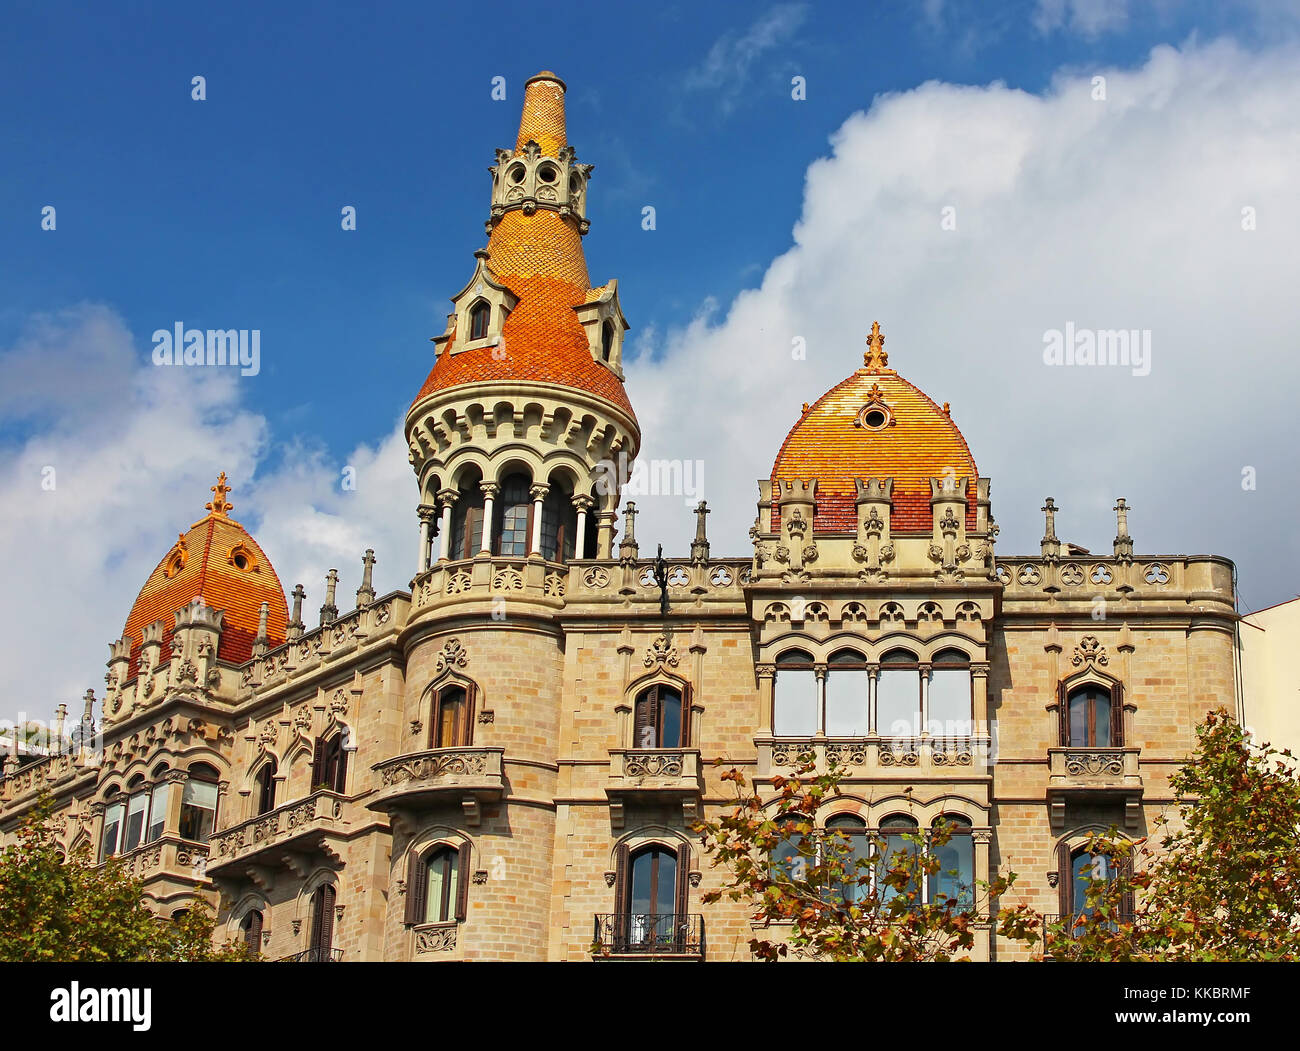 Cases Pons in Barcelona, Spain. Was built in 1890-1891 by Catalan architect Enric Sagnier - Stock Image